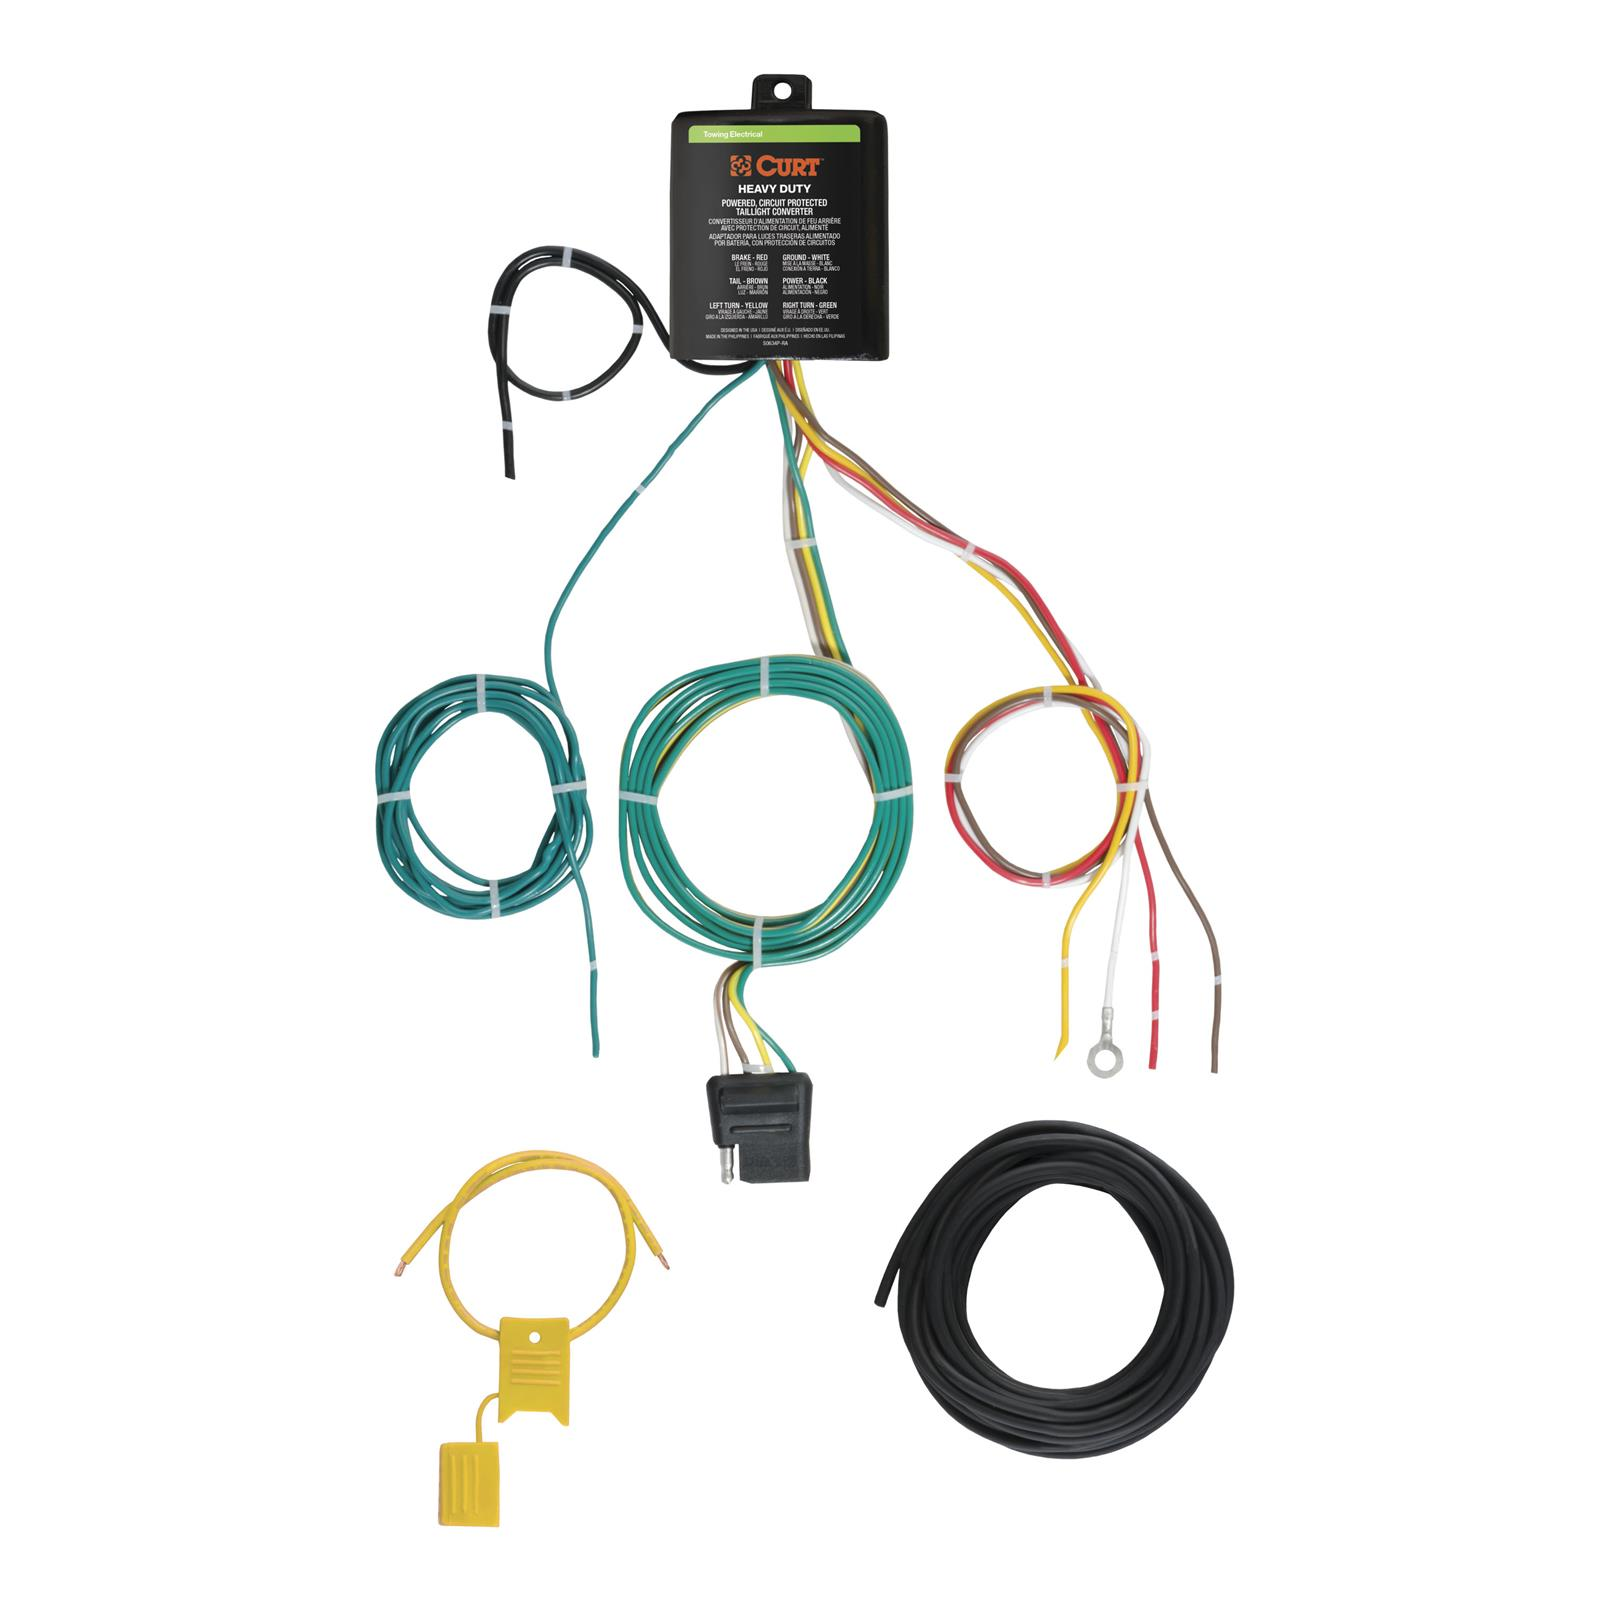 hight resolution of curt taillight converter wiring kits 59236 free shipping on orders over 99 at summit racing